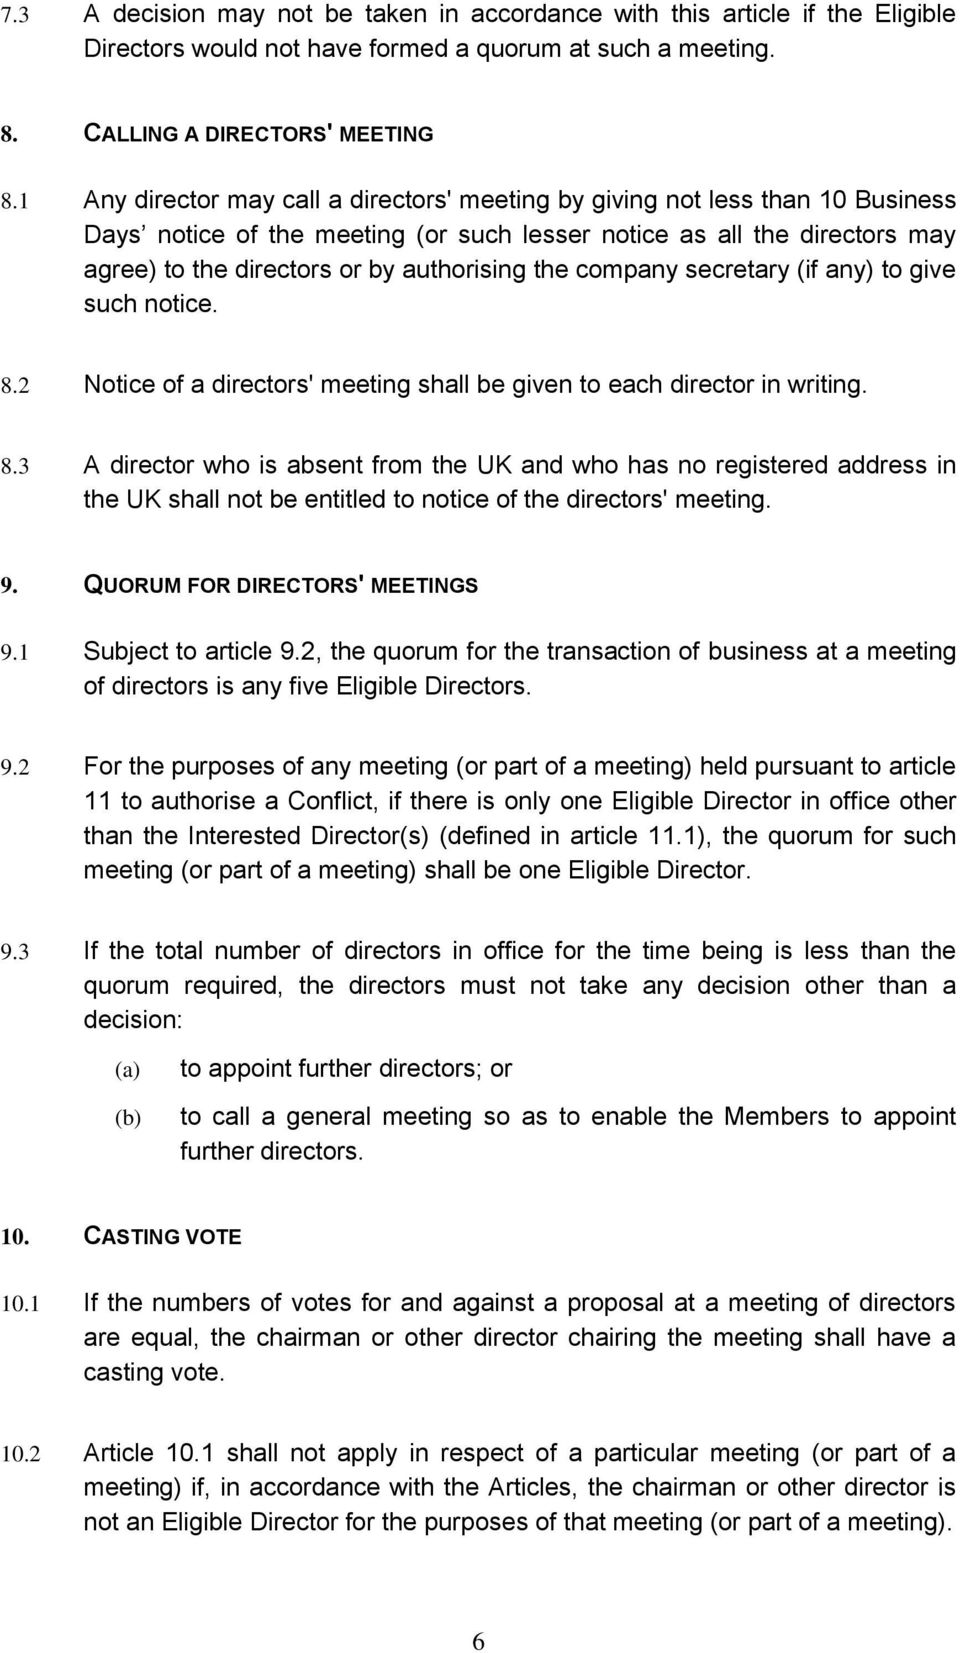 the company secretary (if any) to give such notice. 8.2 Notice of a directors' meeting shall be given to each director in writing. 8.3 A director who is absent from the UK and who has no registered address in the UK shall not be entitled to notice of the directors' meeting.